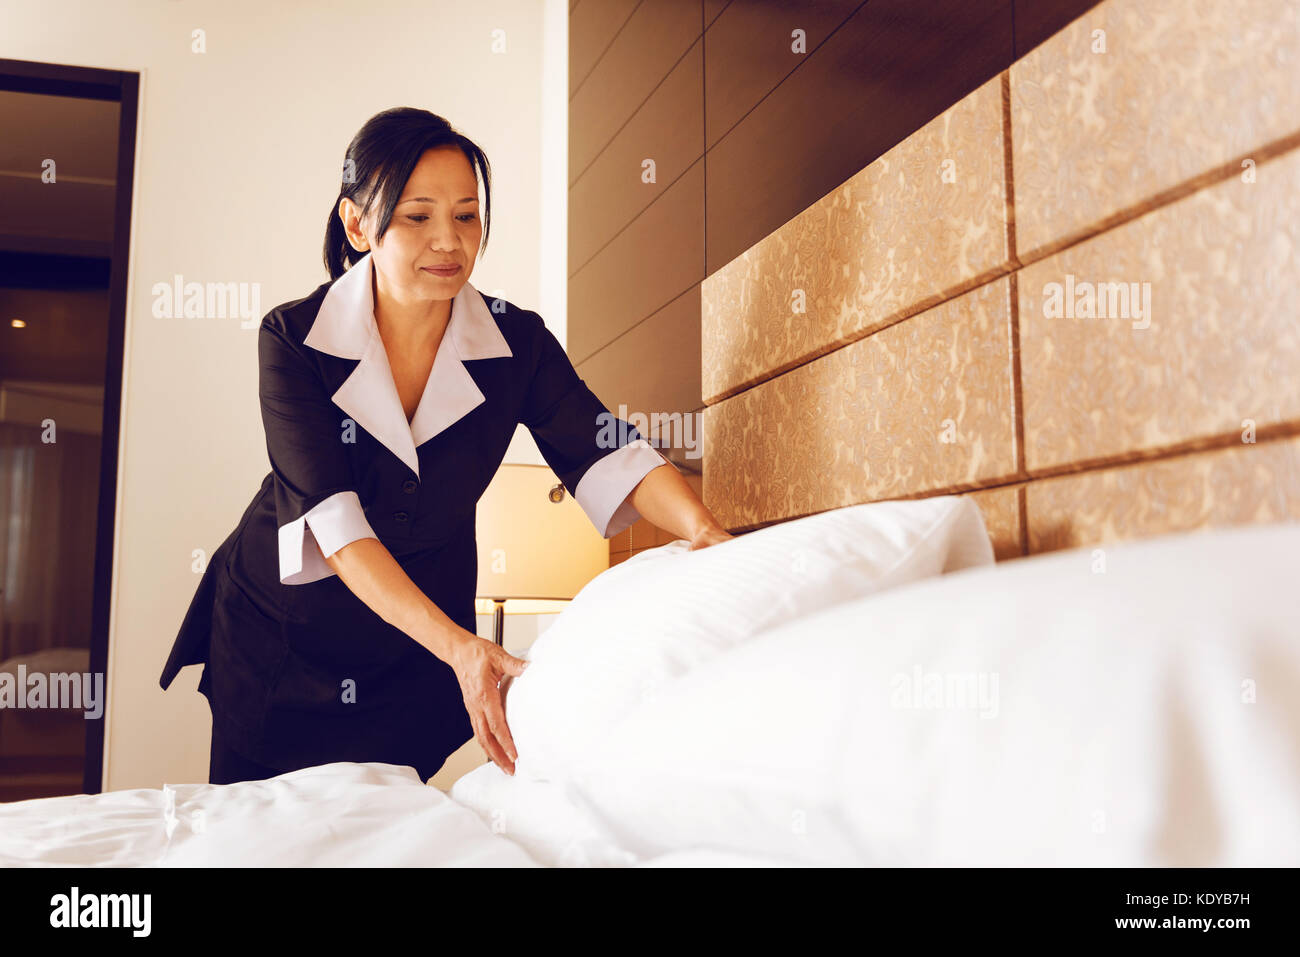 Serious maid putting pillow straight - Stock Image